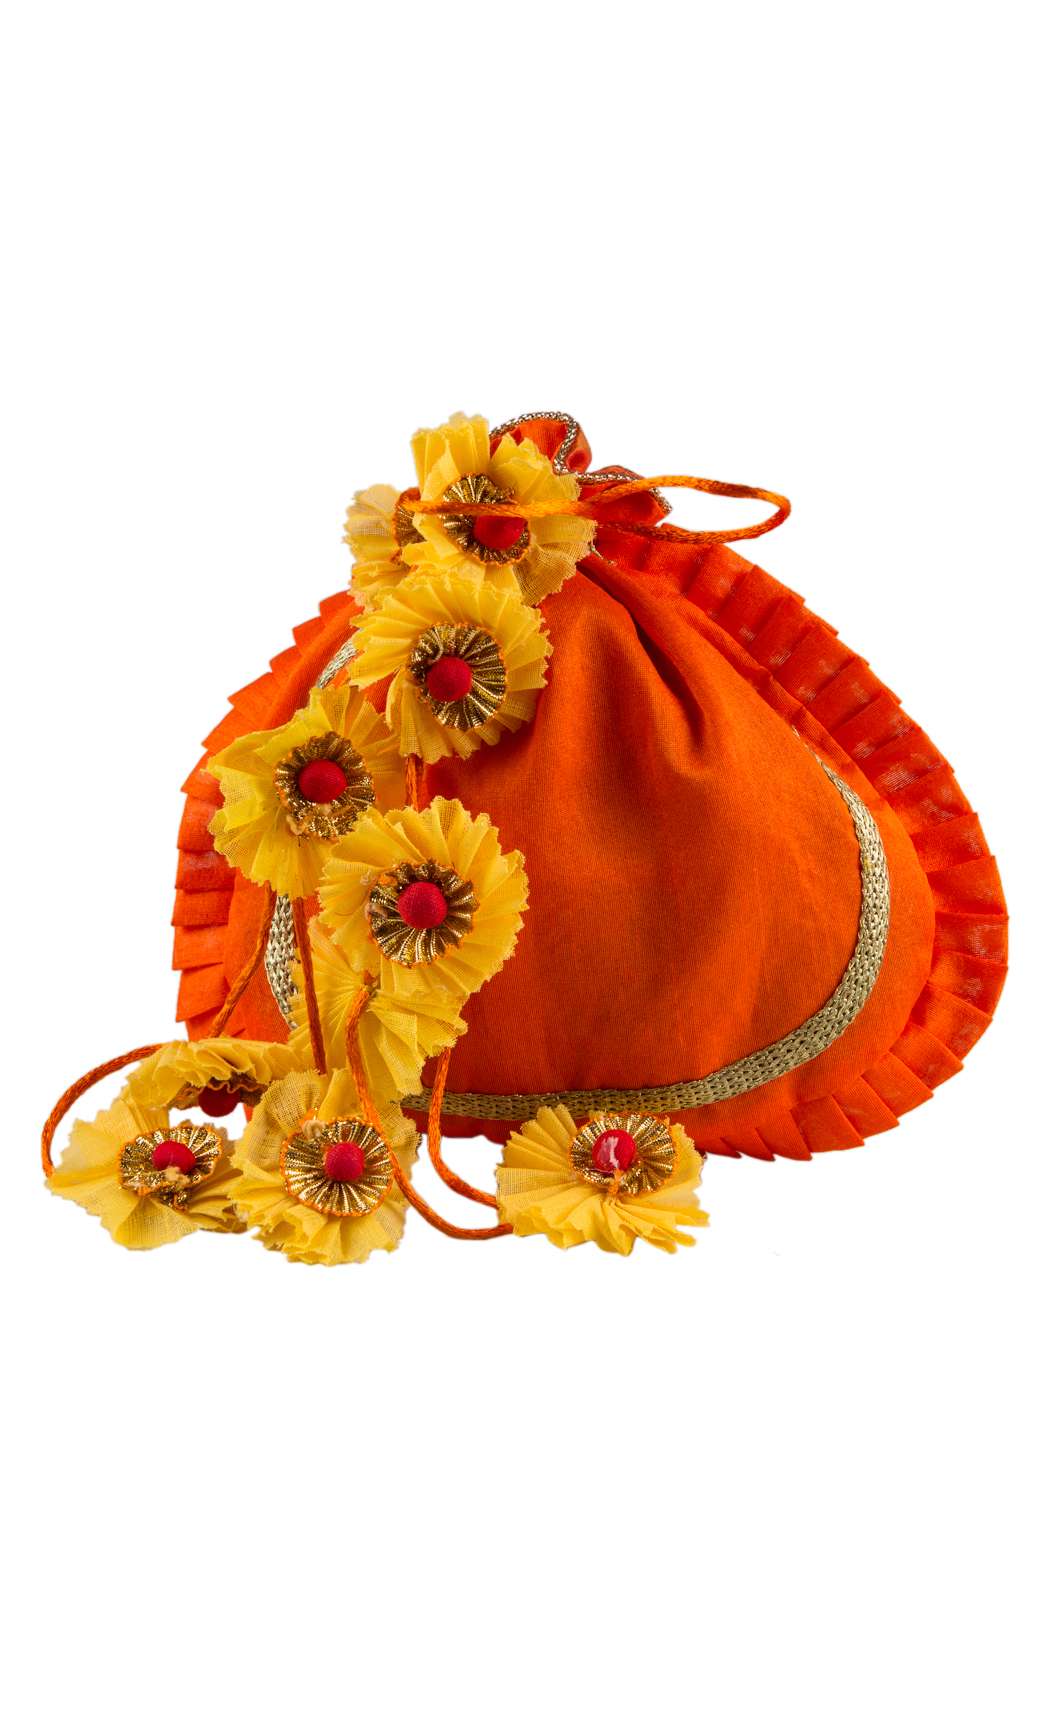 Orange Round Potli with Gold Gota Work and Yellow Floral Tassels (Pack of 5) - Buy Online